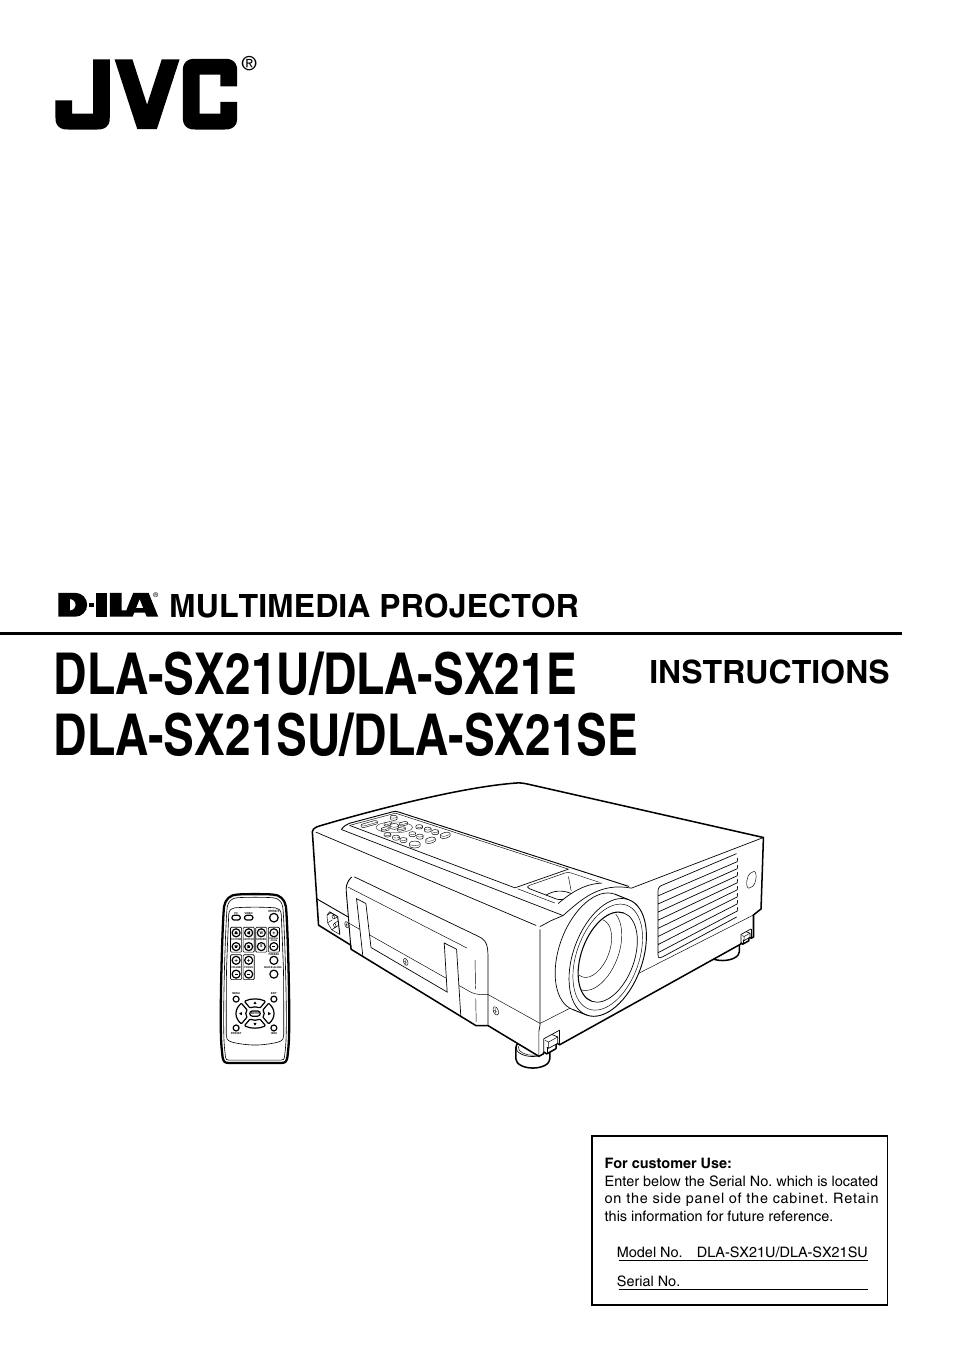 JVC DLA-SX21SU User Manual | 58 pages | Also for: DLA-SX21SE